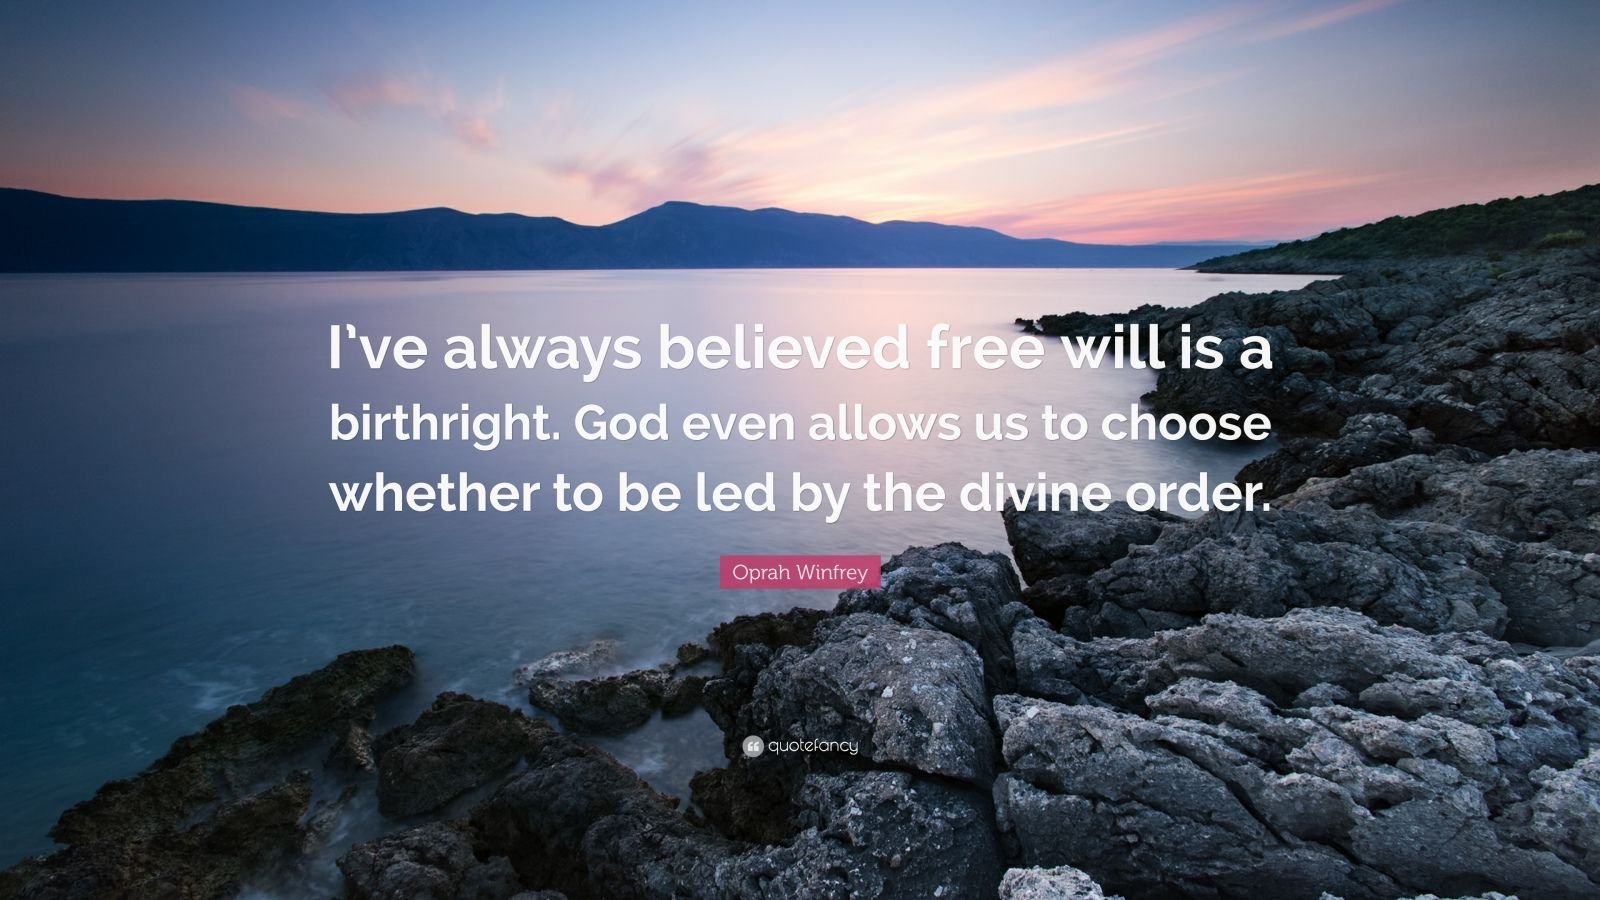 """Oprah Winfrey Quote: """"I've always believed free will is a birthright. God even allows us to choose whether to be led by the divine order."""""""